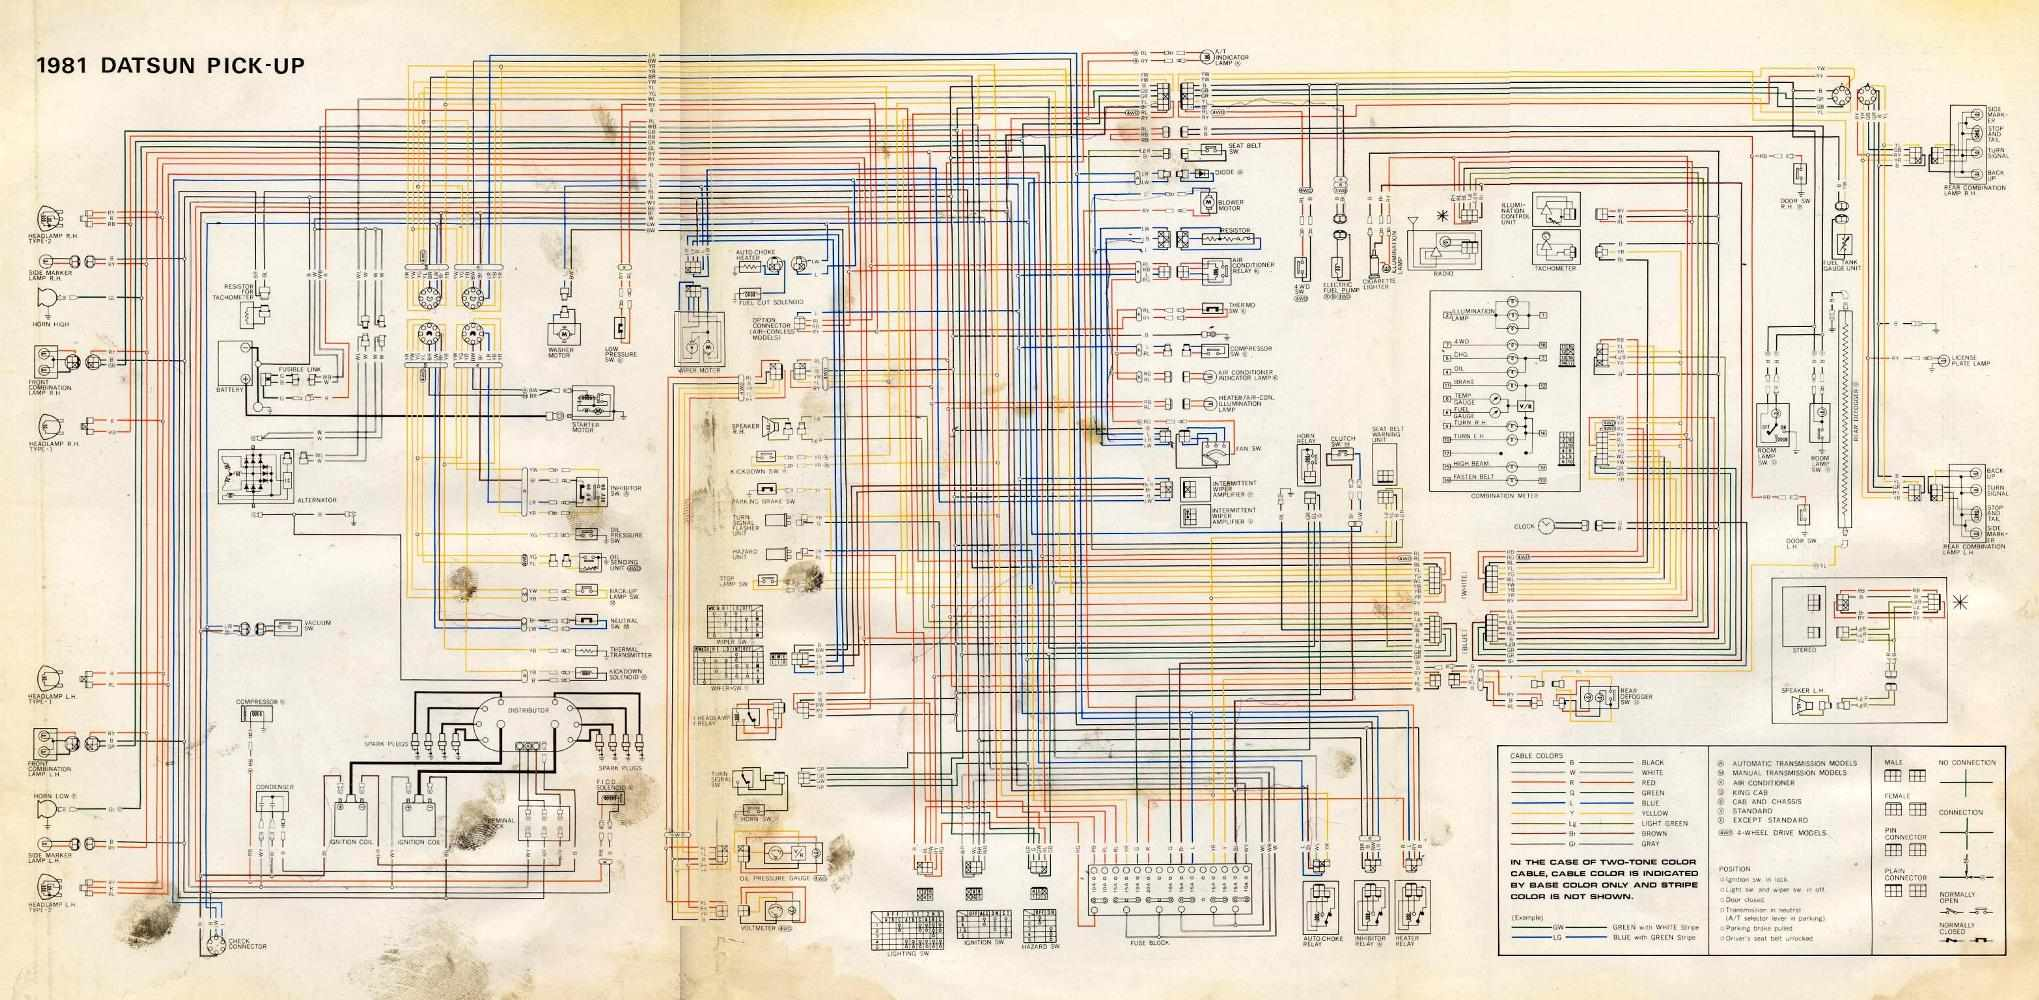 87 S10 Wiper Wiring Diagram | Best Wiring Liry  S Wiper Motor Wiring Diagram on 1987 s10 engine, 1987 s10 headlights, 1987 s10 vacuum diagram, 97 s10 vacuum diagram, 1987 s10 parts, 1987 s10 ignition system, 1987 s10 frame, 1987 s10 seats, 1987 s10 fuel gauge, 1987 s10 body, 1987 s10 fuse, 1987 s10 ignition coil,